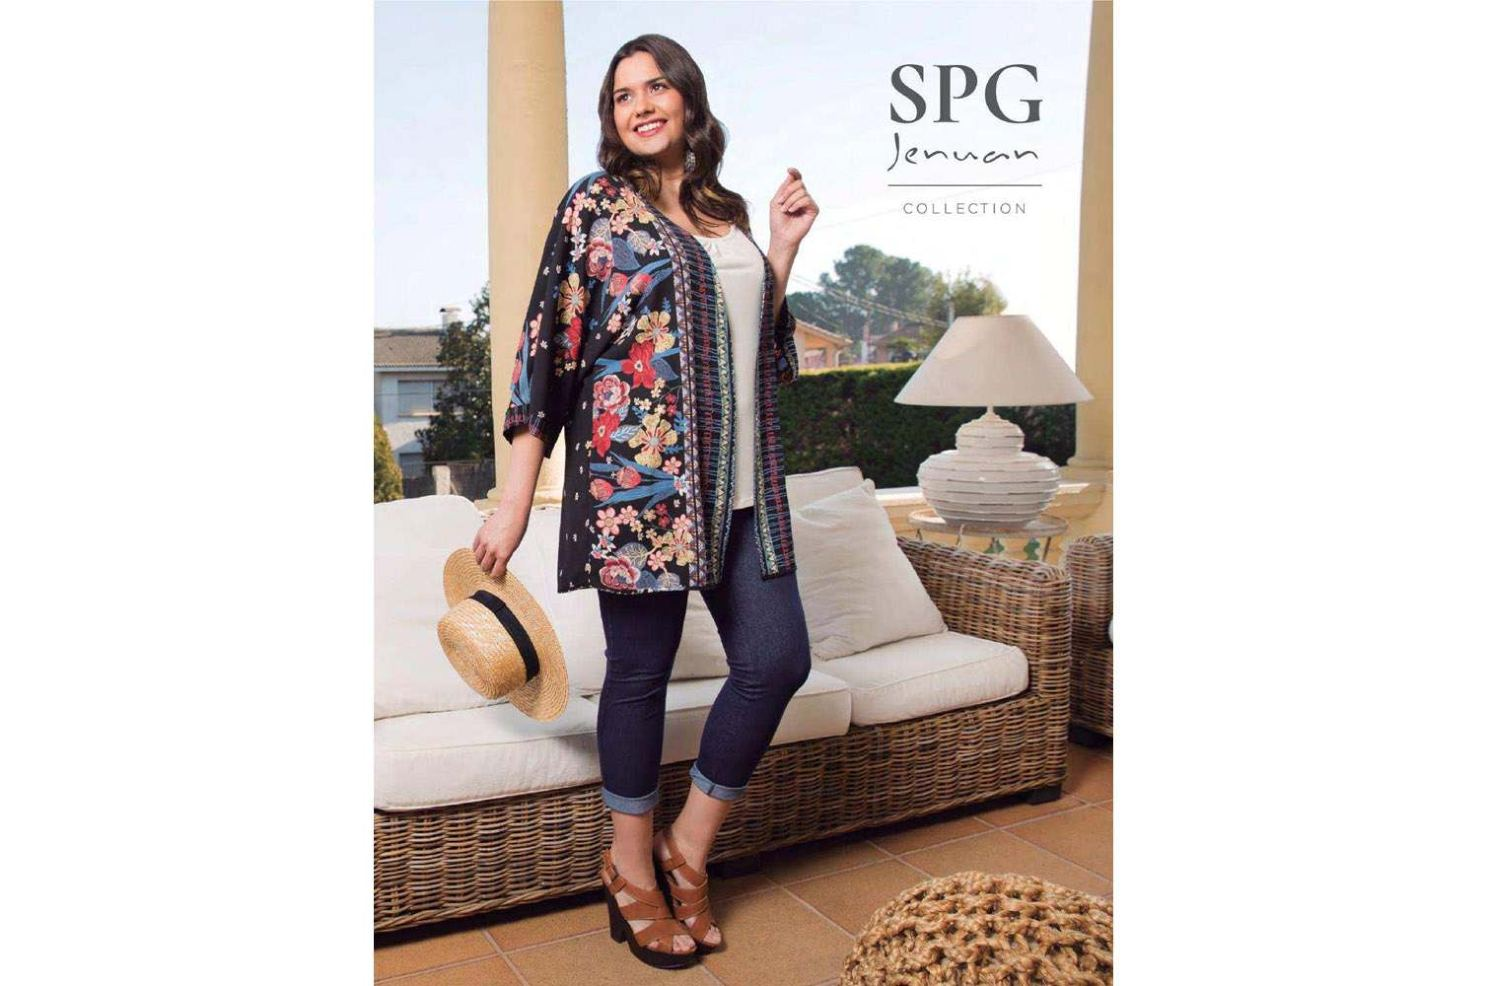 Spg Jenuan Casual Collection Ss 2017